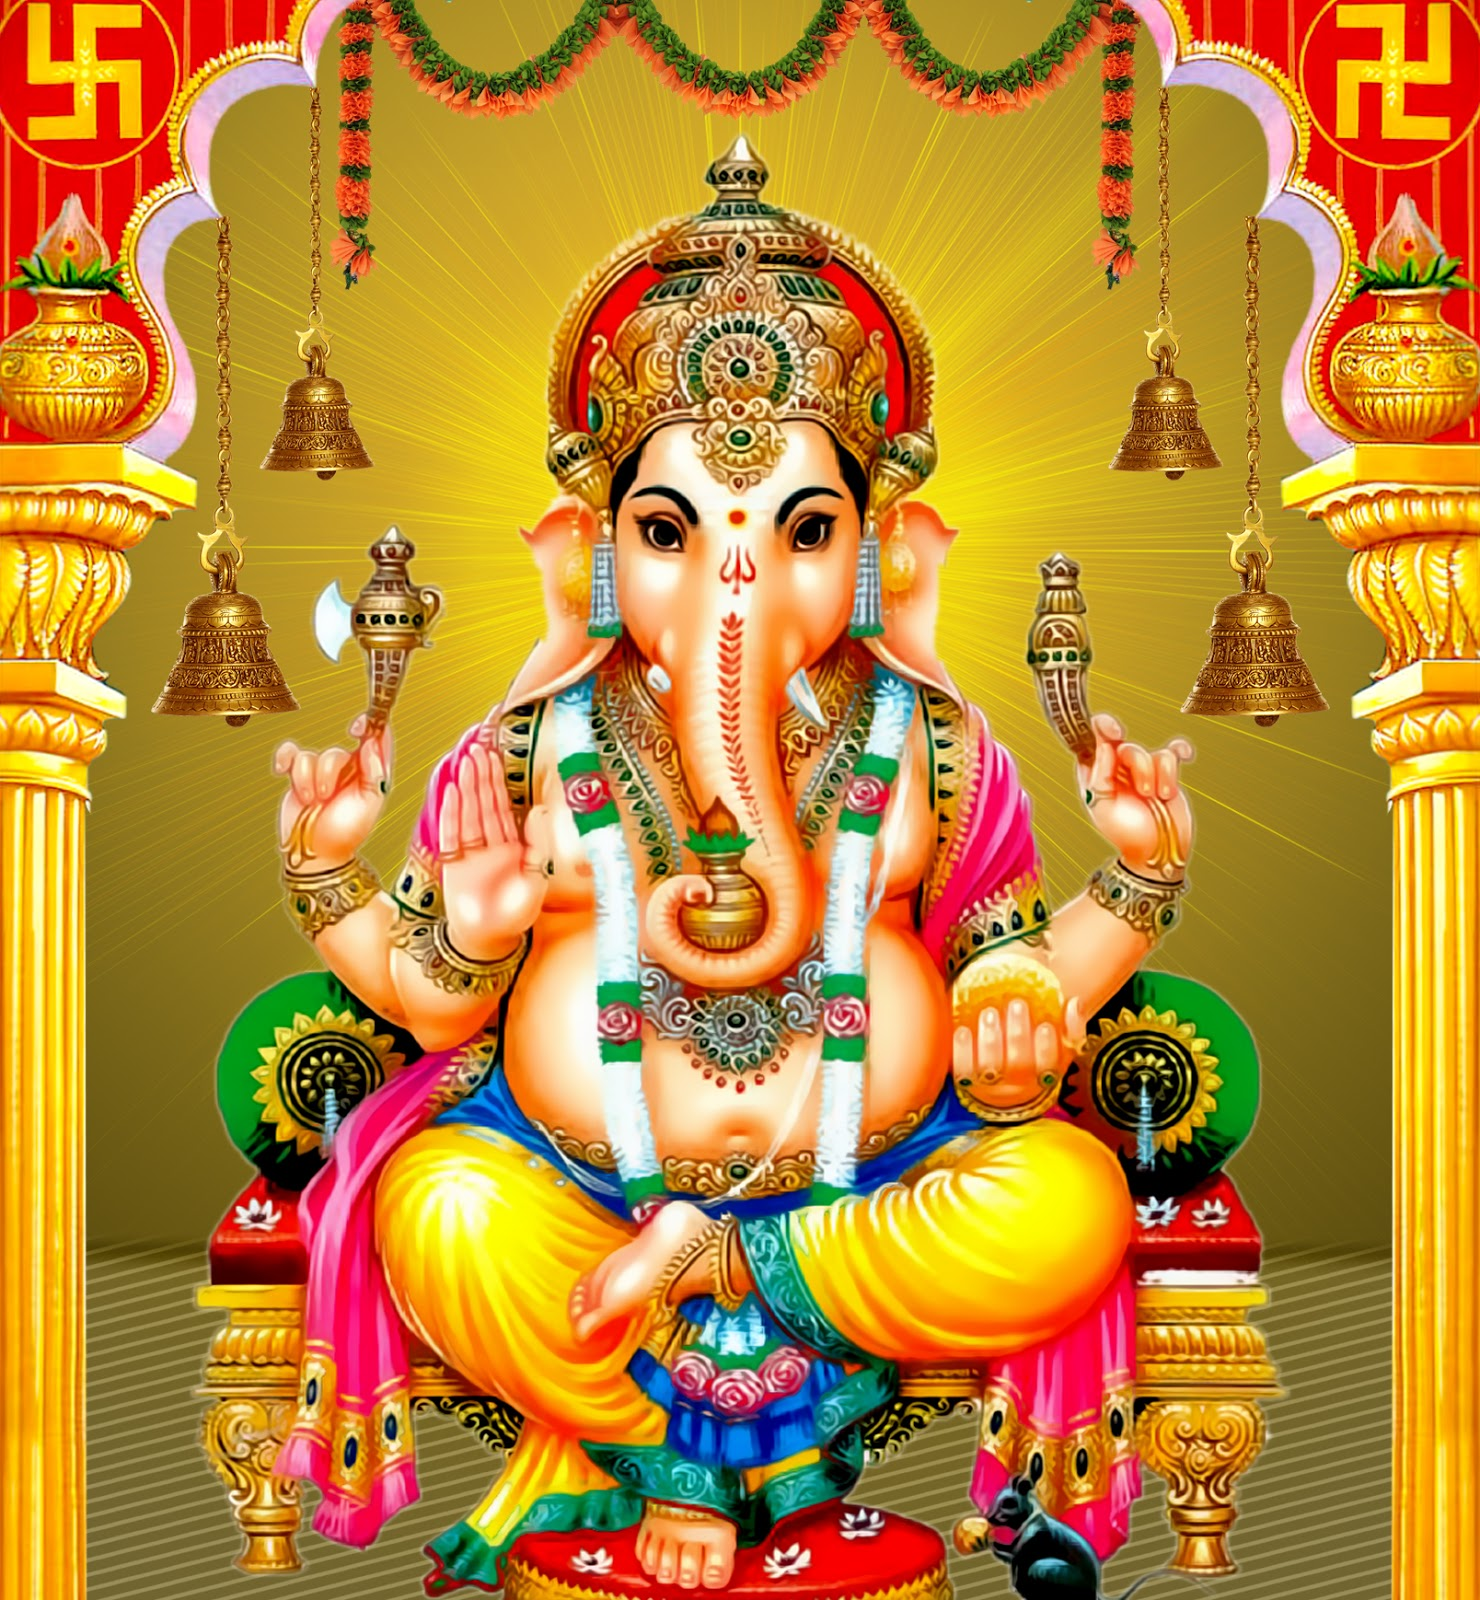 Shri Ganesh Hd Wallpaper: Lord Ganesha HD Images Free Online